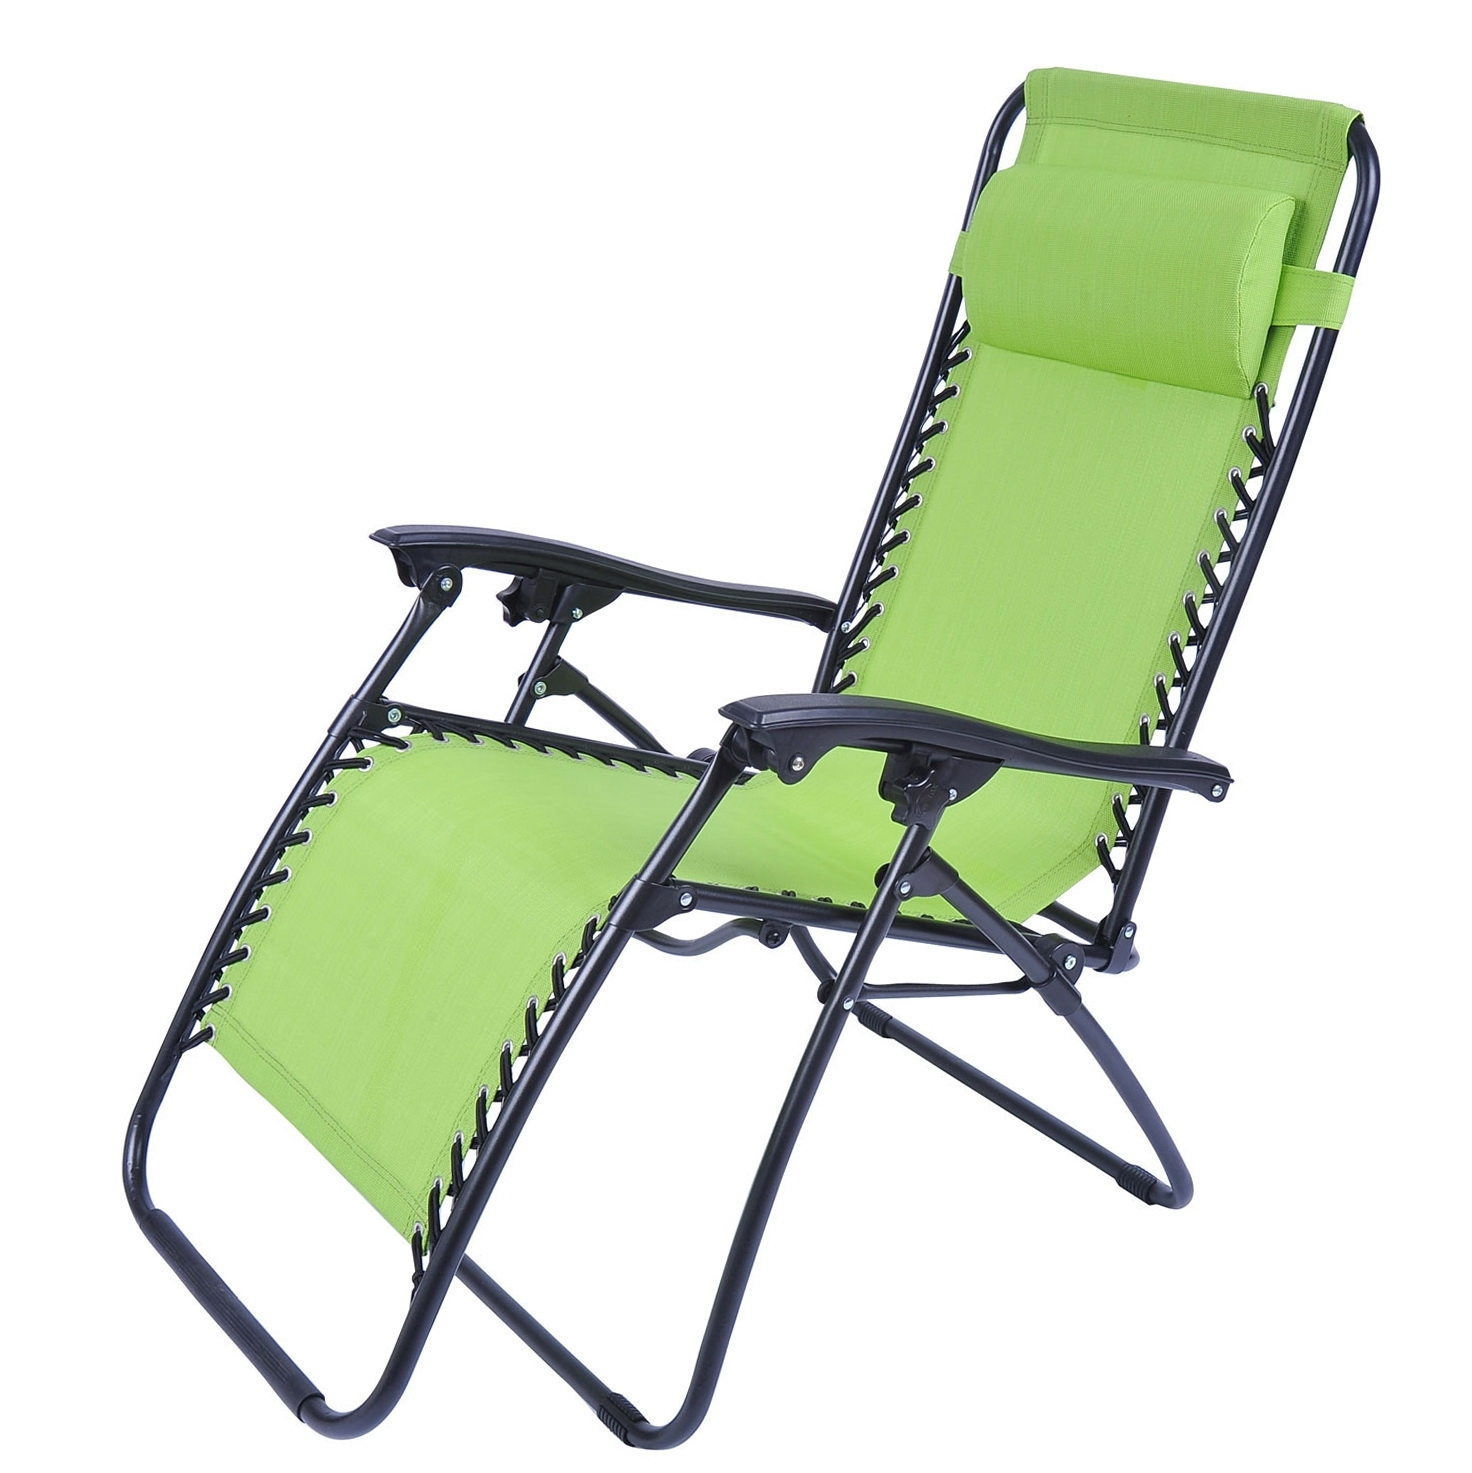 Most Recent Folding Chaise Lounge Chair Patio Outdoor Pool Beach Lawn Recliner Intended For Folding Chaise Lounge Outdoor Chairs (View 11 of 15)